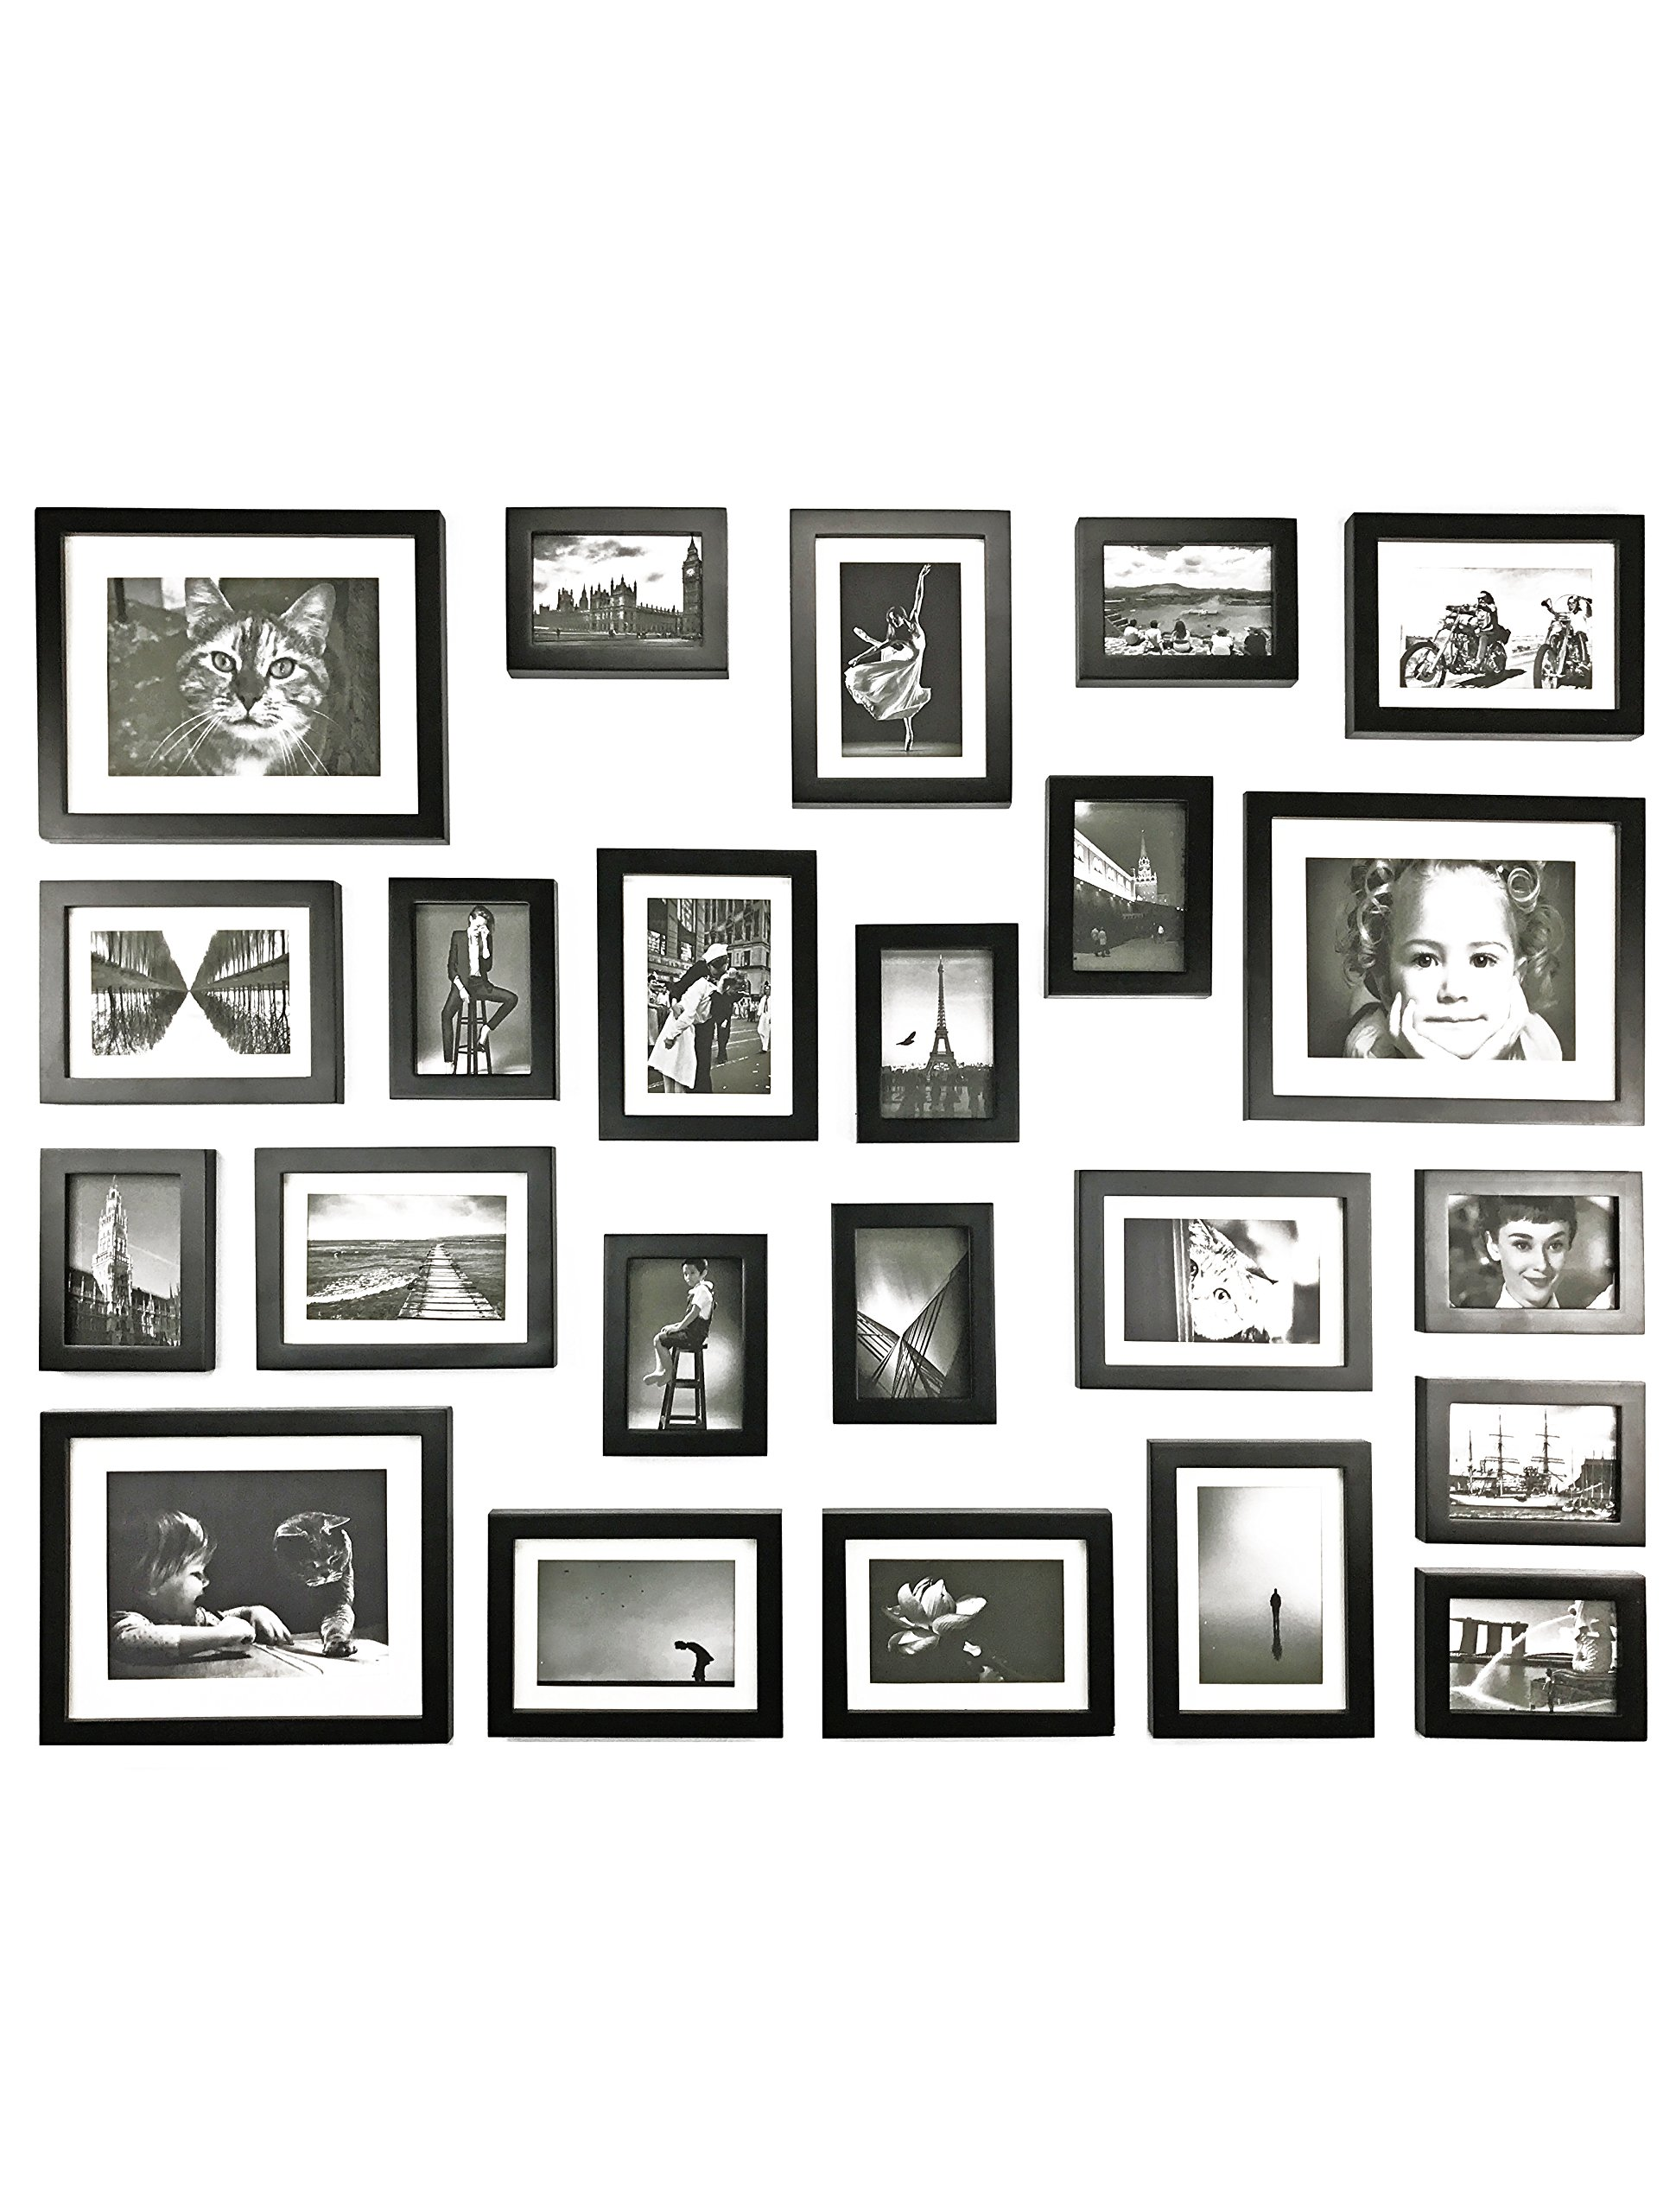 Ray & Chow Black Gallery Wall Picture Frames Set- 23 Frames- Solid Wood- Glass Window-Made to Display 8x10 5x7 3.5x5 pictures without Mat or 6x8 4x6 3.5x5 pictures with Mat - Hanging Hardware Included by Ray & Chow